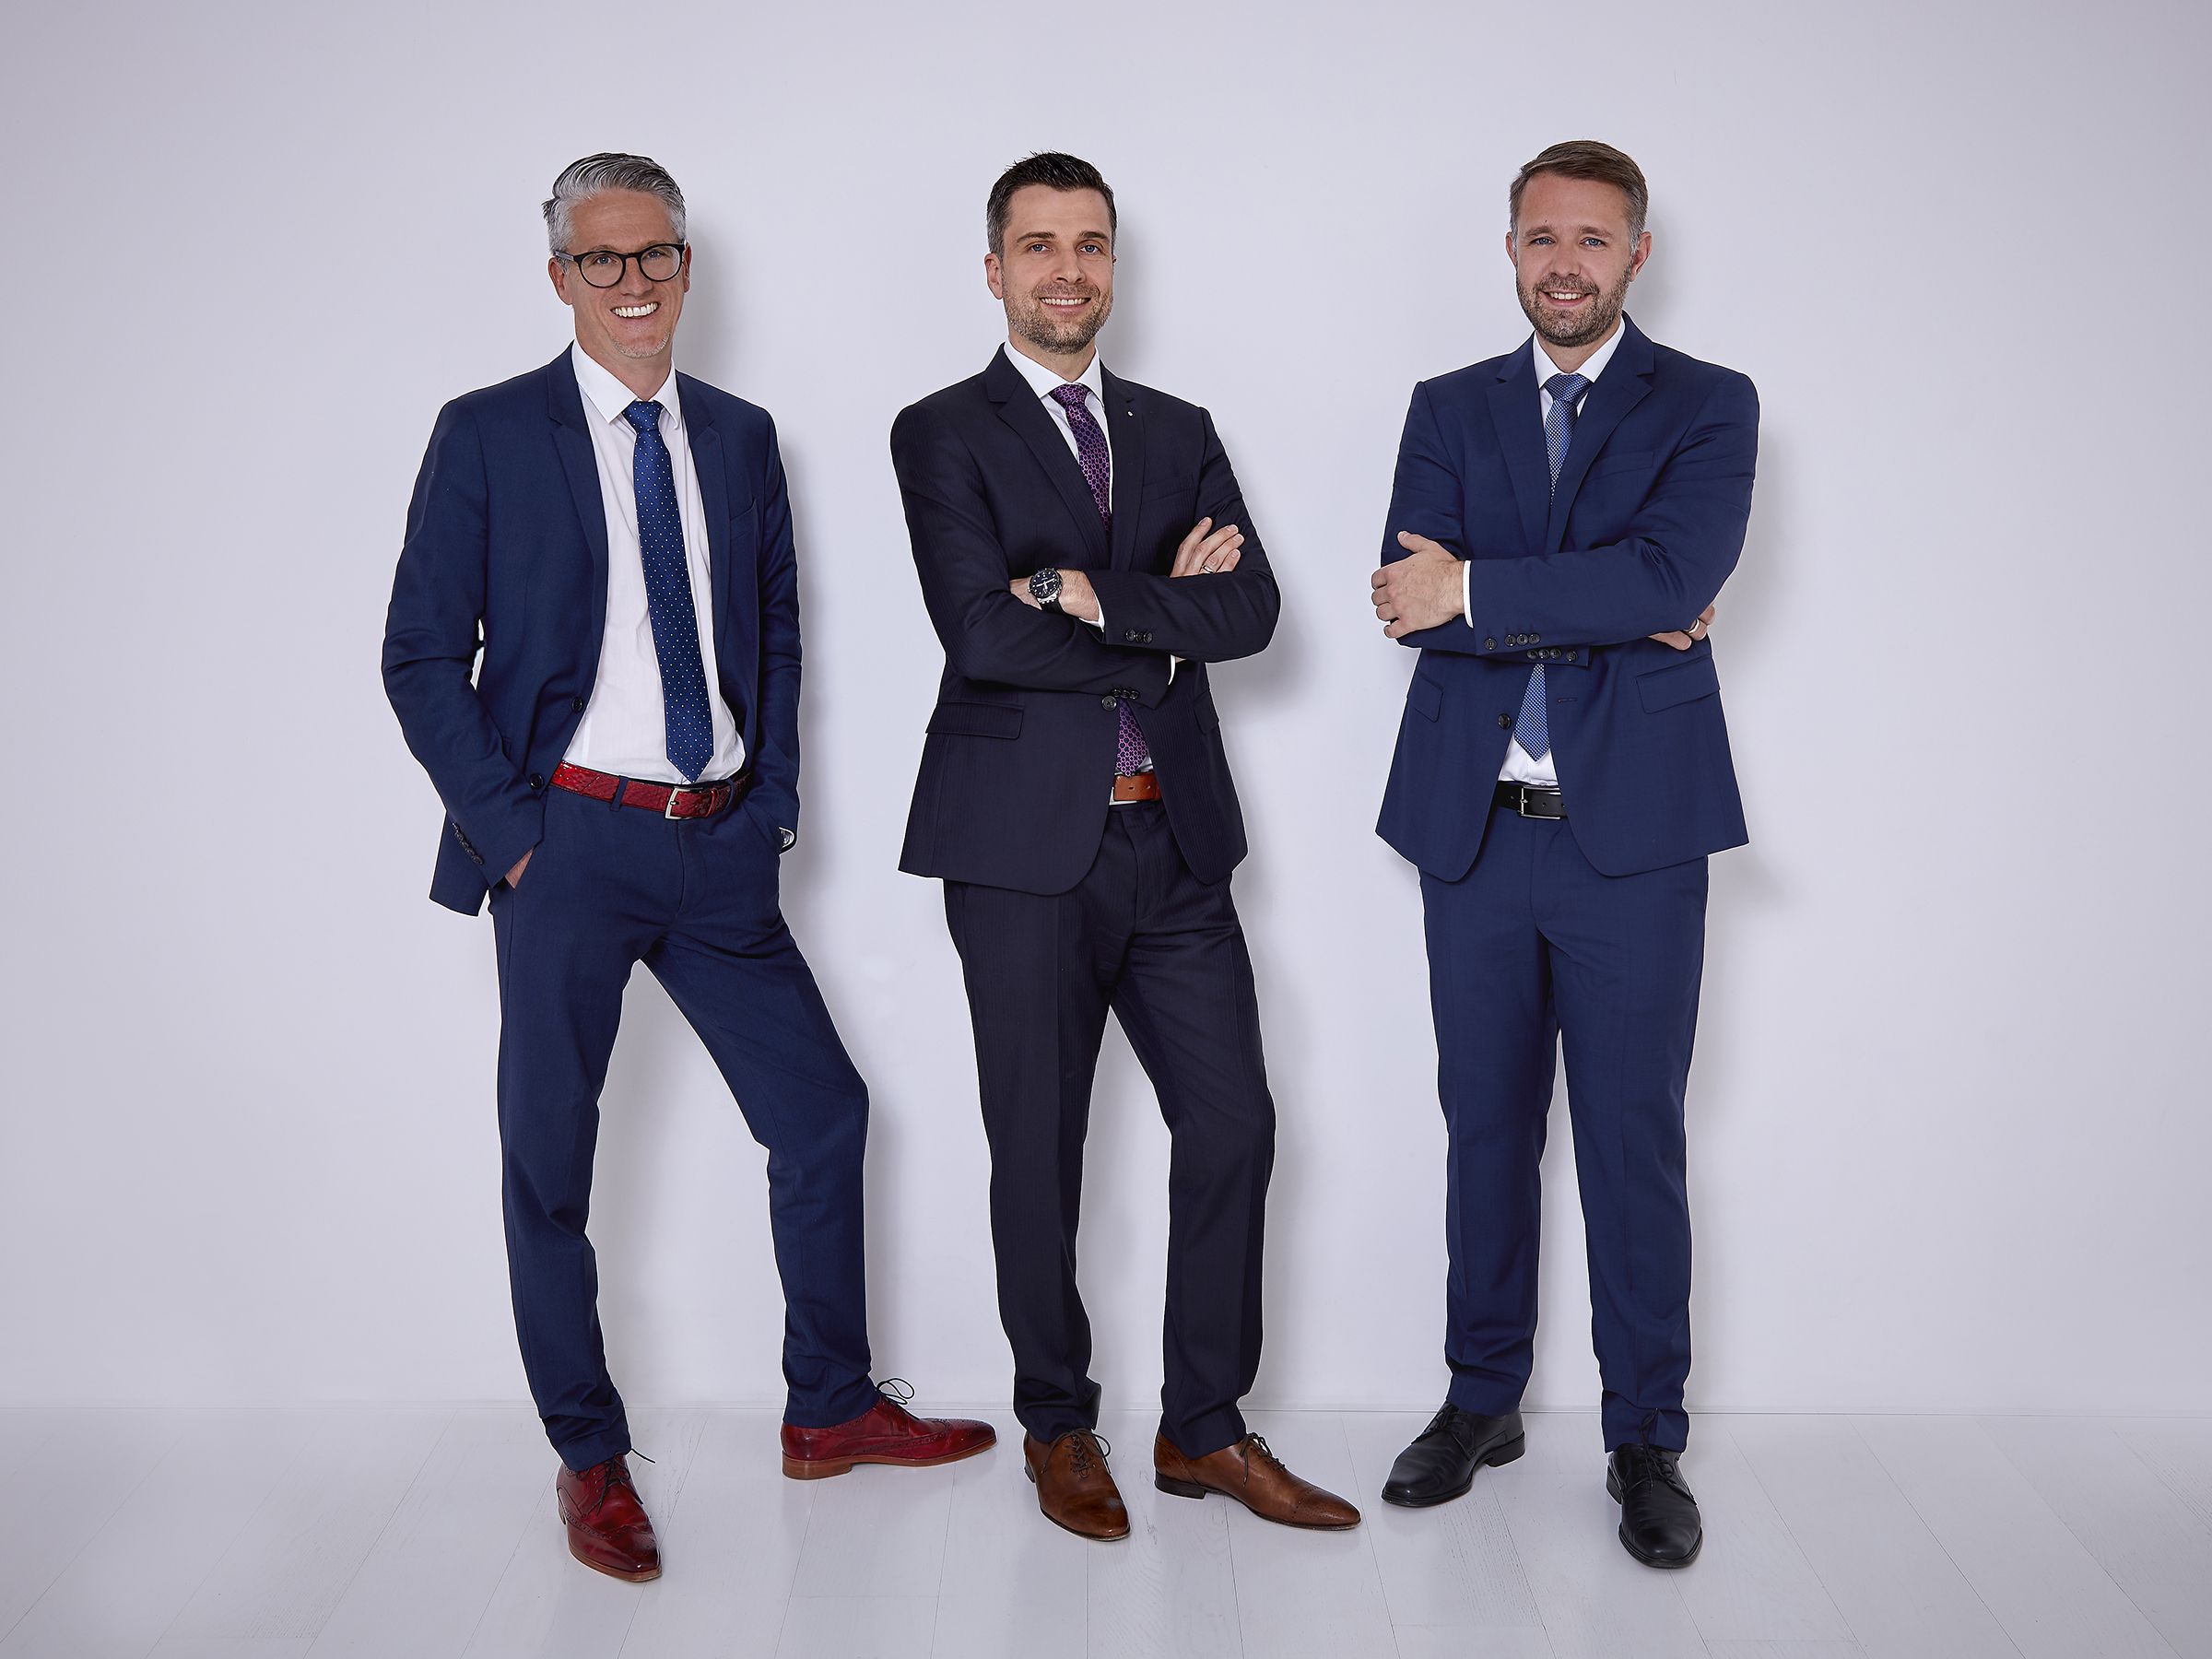 The qoncept founders